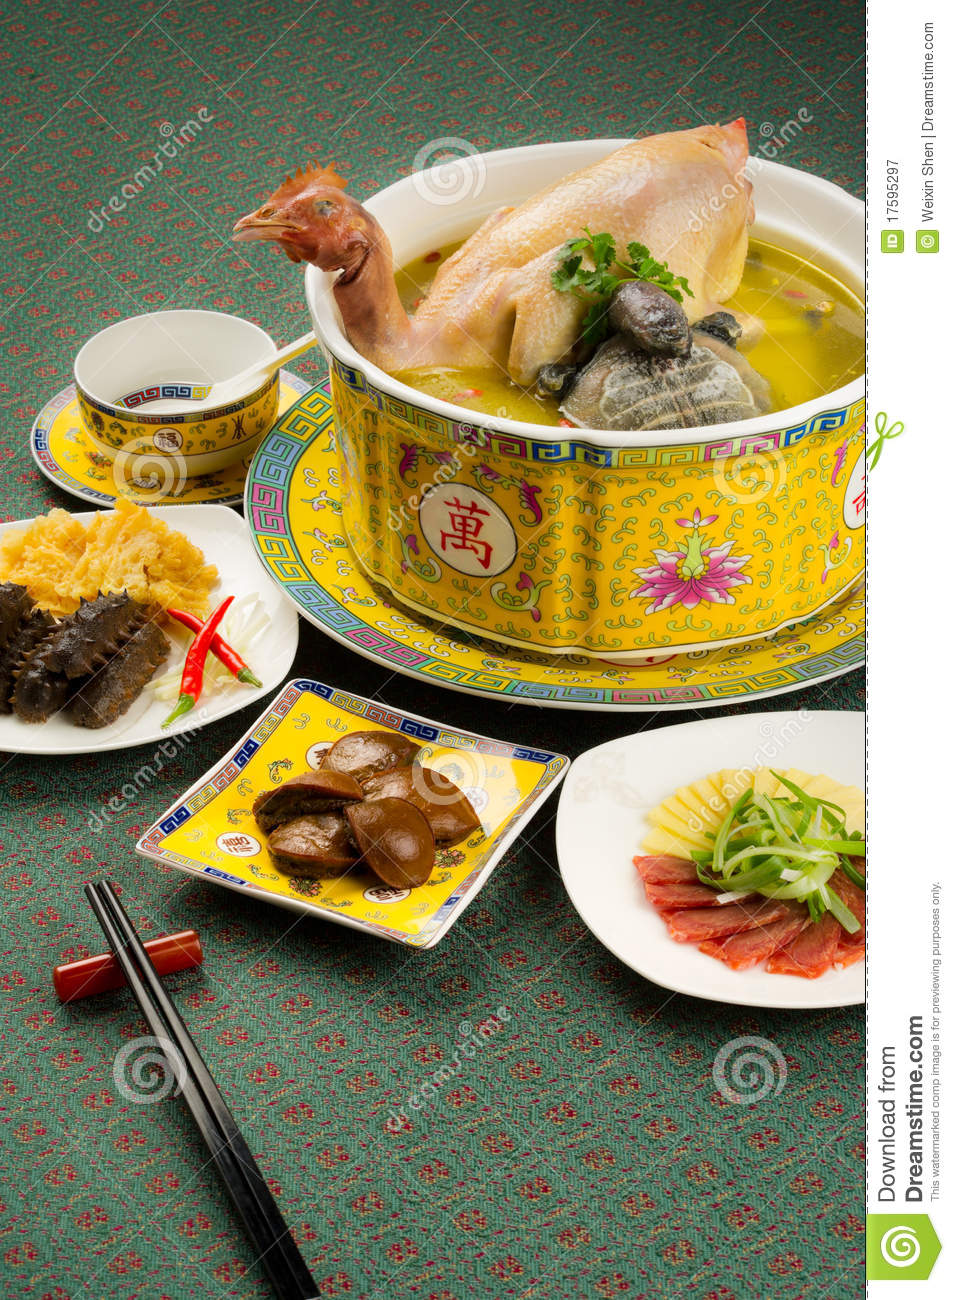 Chinese cuisine, chicken soup in the pot with food stuff.